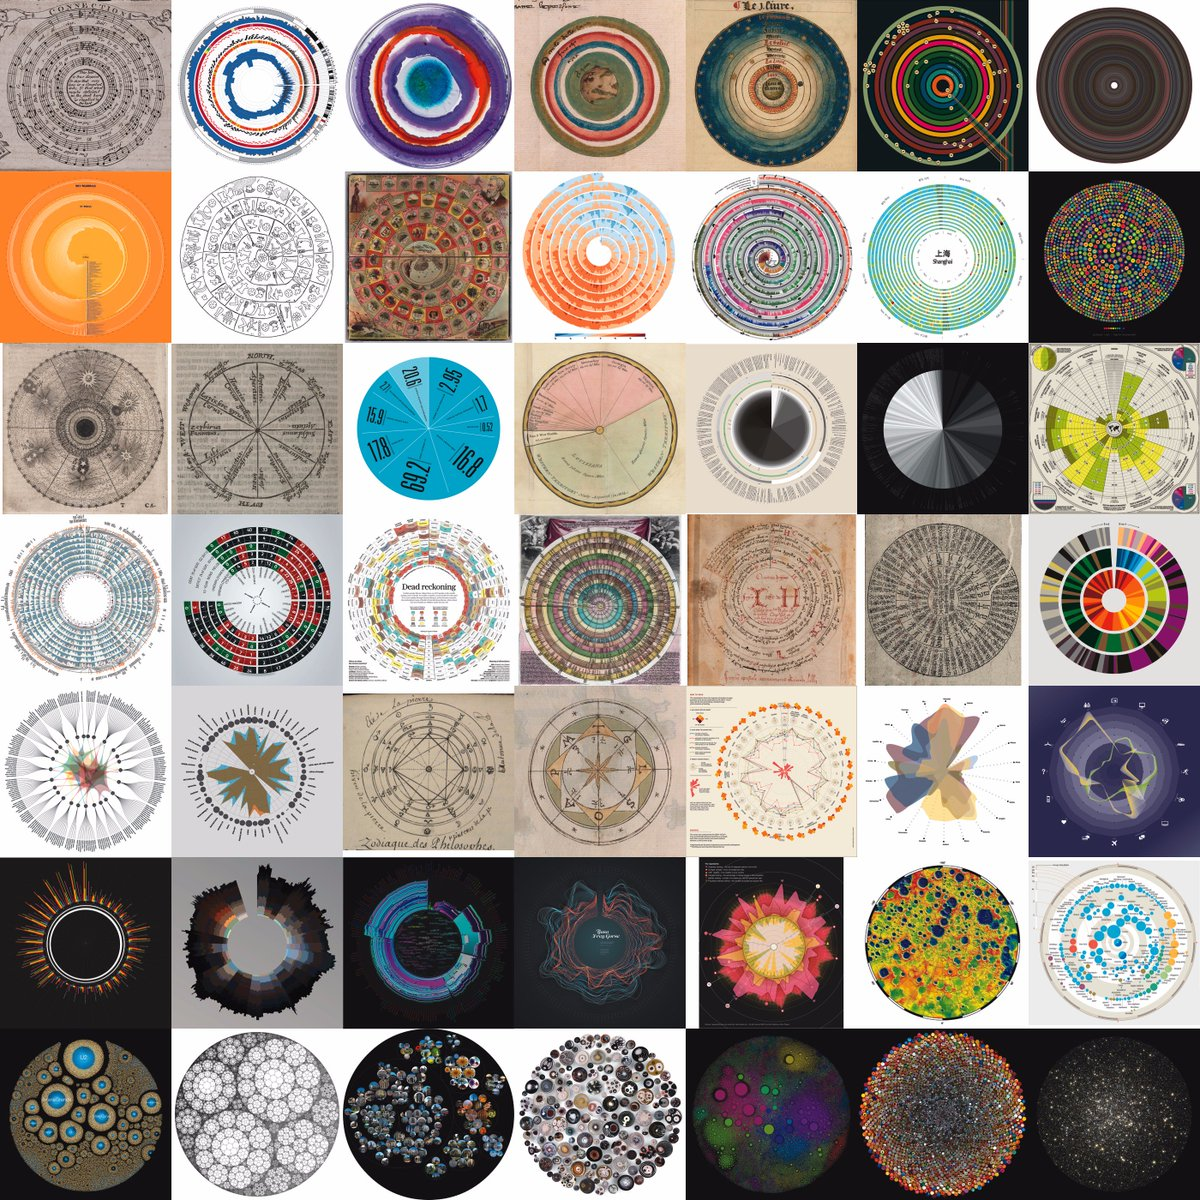 The Book of Circles Visualizing Spheres of Knowledge